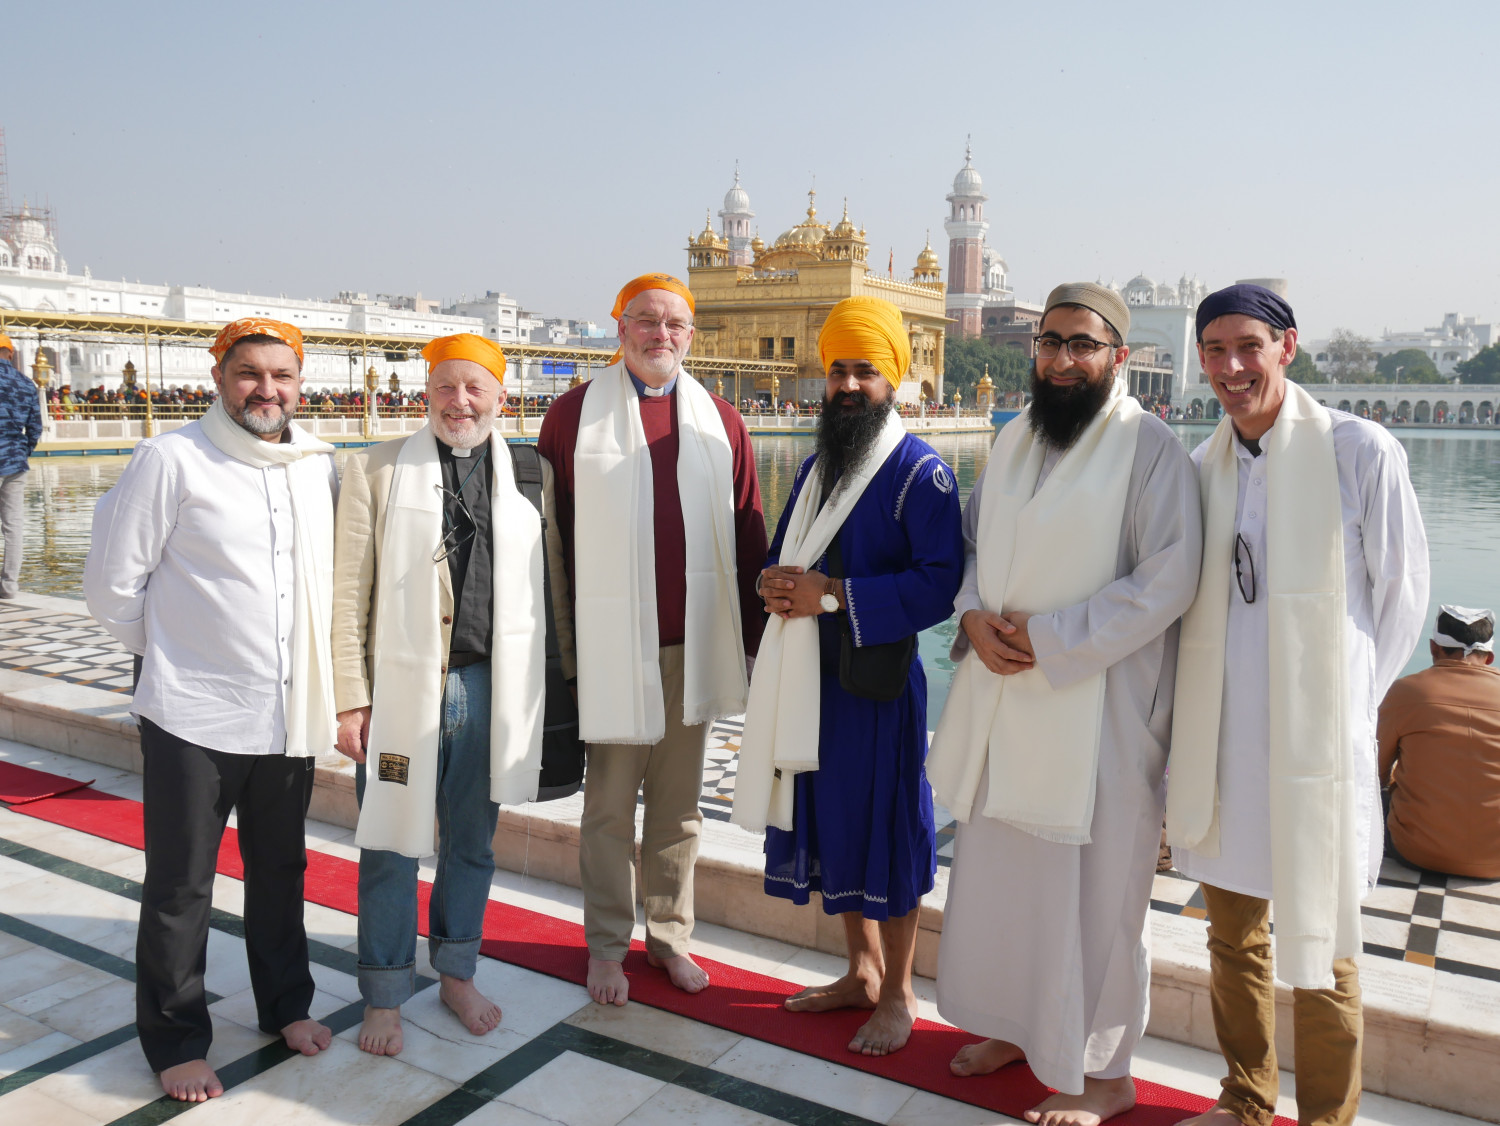 A group of men of different faiths at the Golden Temple in Amritsar